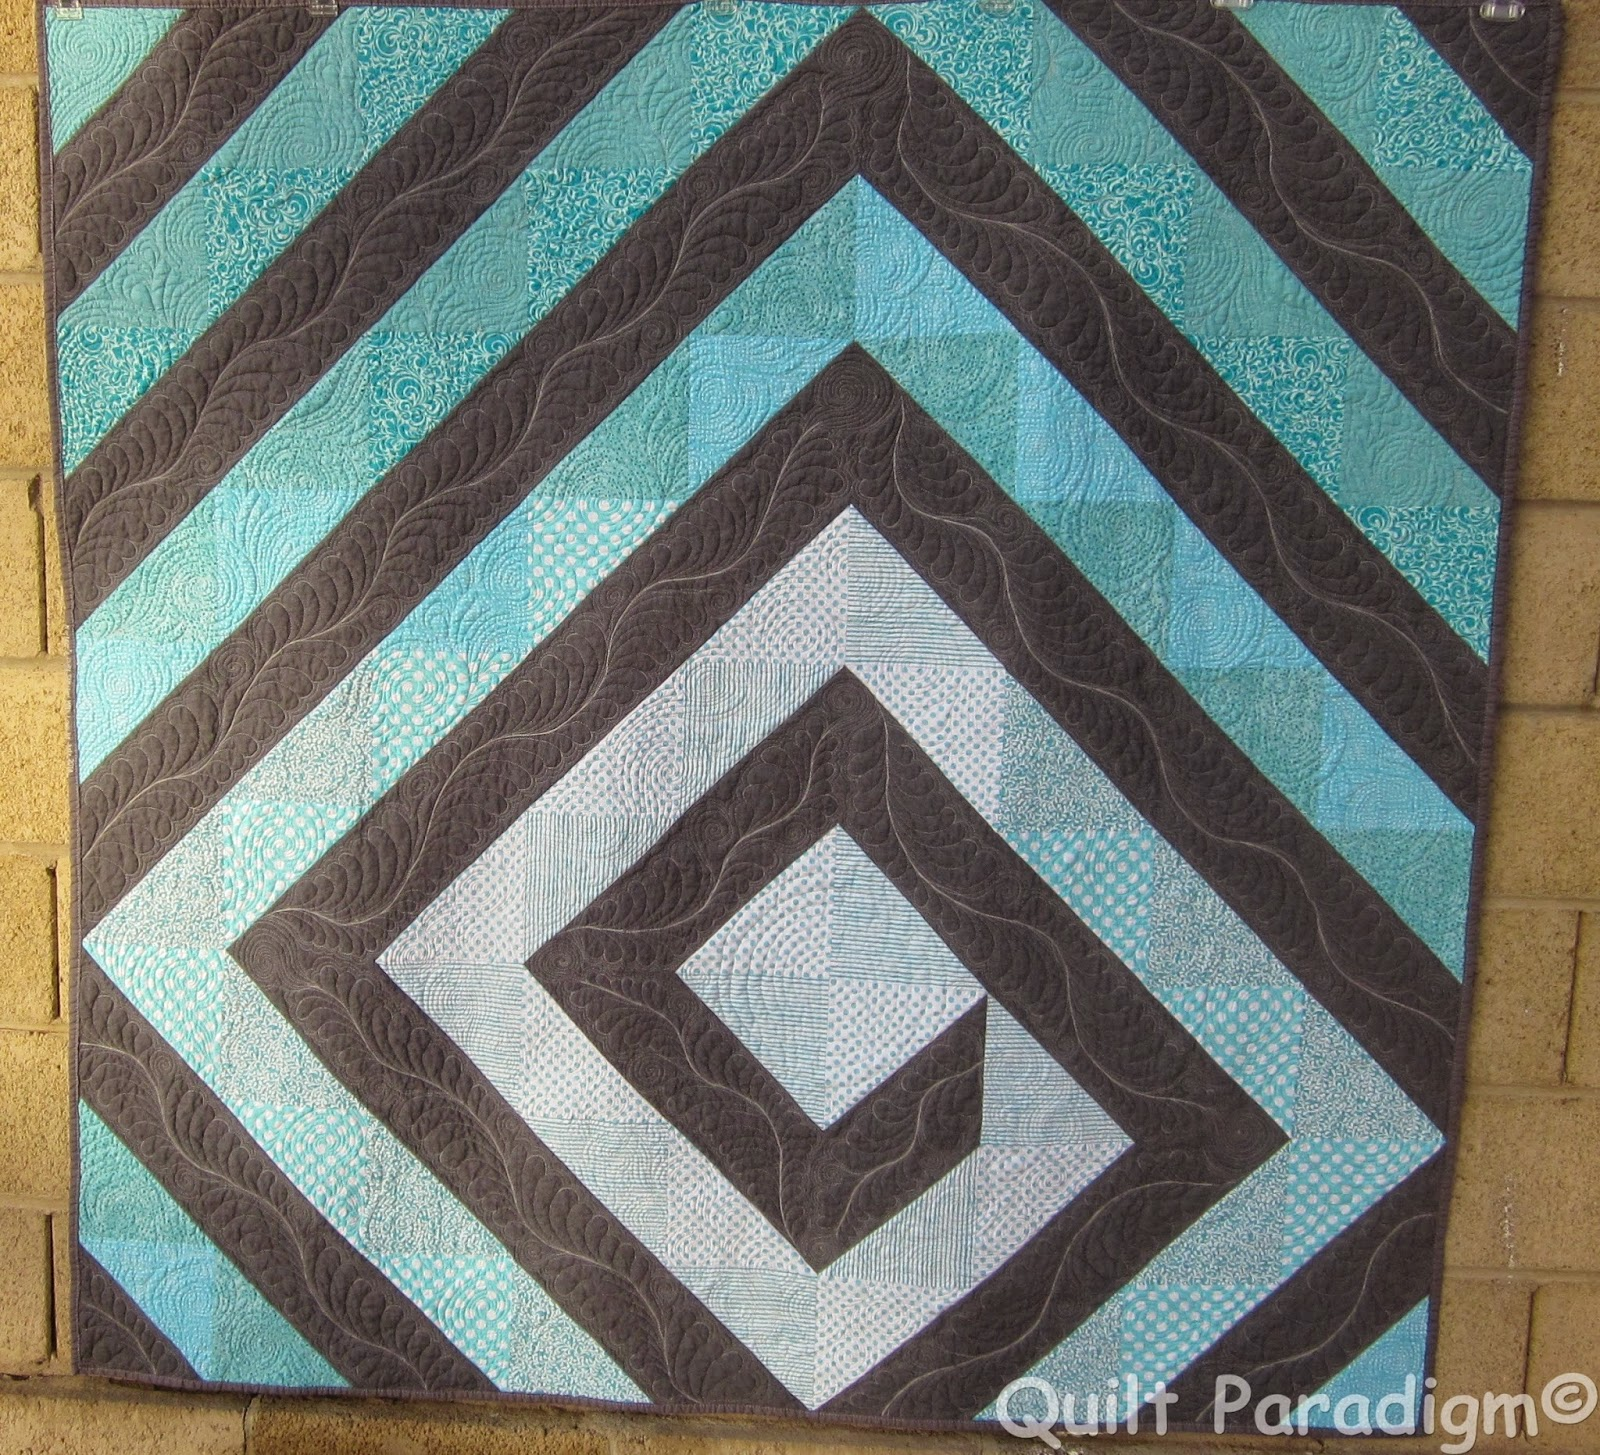 http://quiltparadigm.blogspot.com/2014/12/twirling-aqua-finished.html